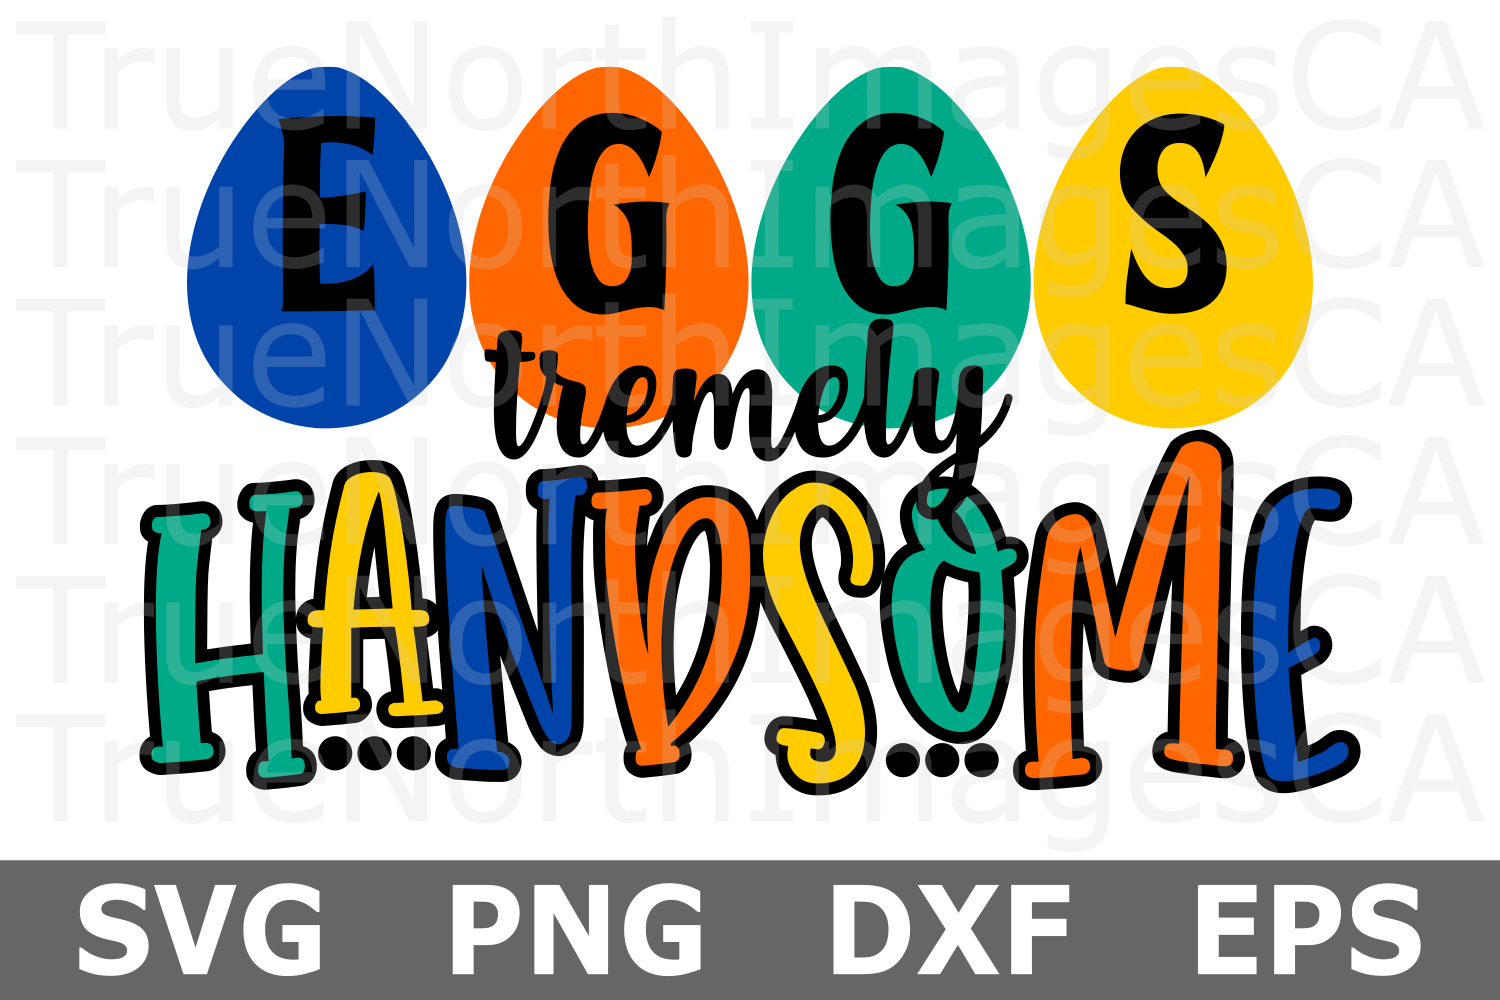 Eggs tremely Handsome - An Easter SVG Cut File example image 1